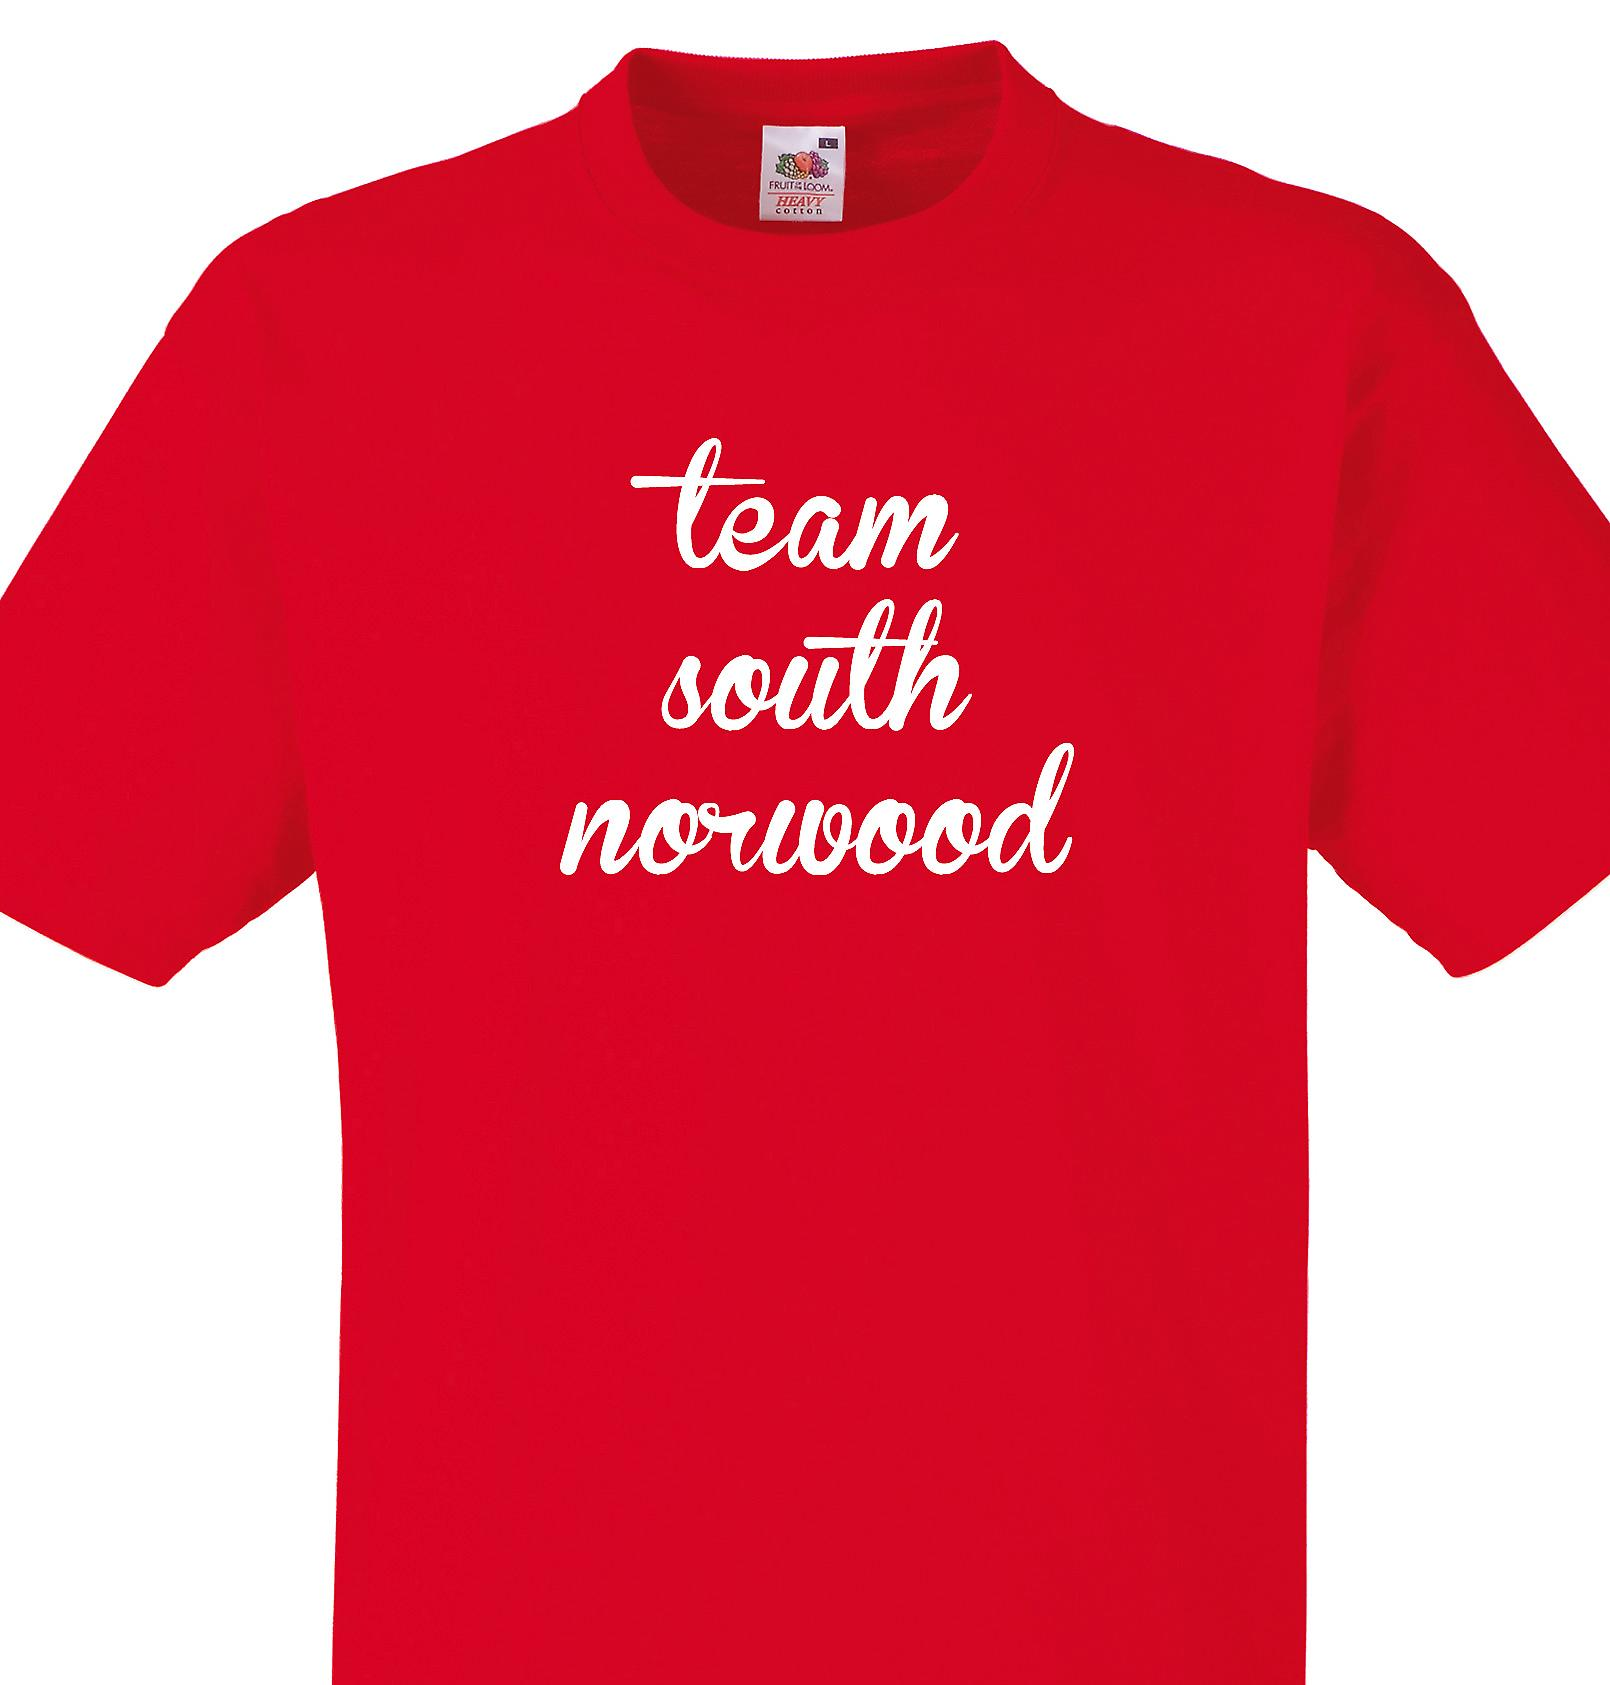 Team South norwood Red T shirt